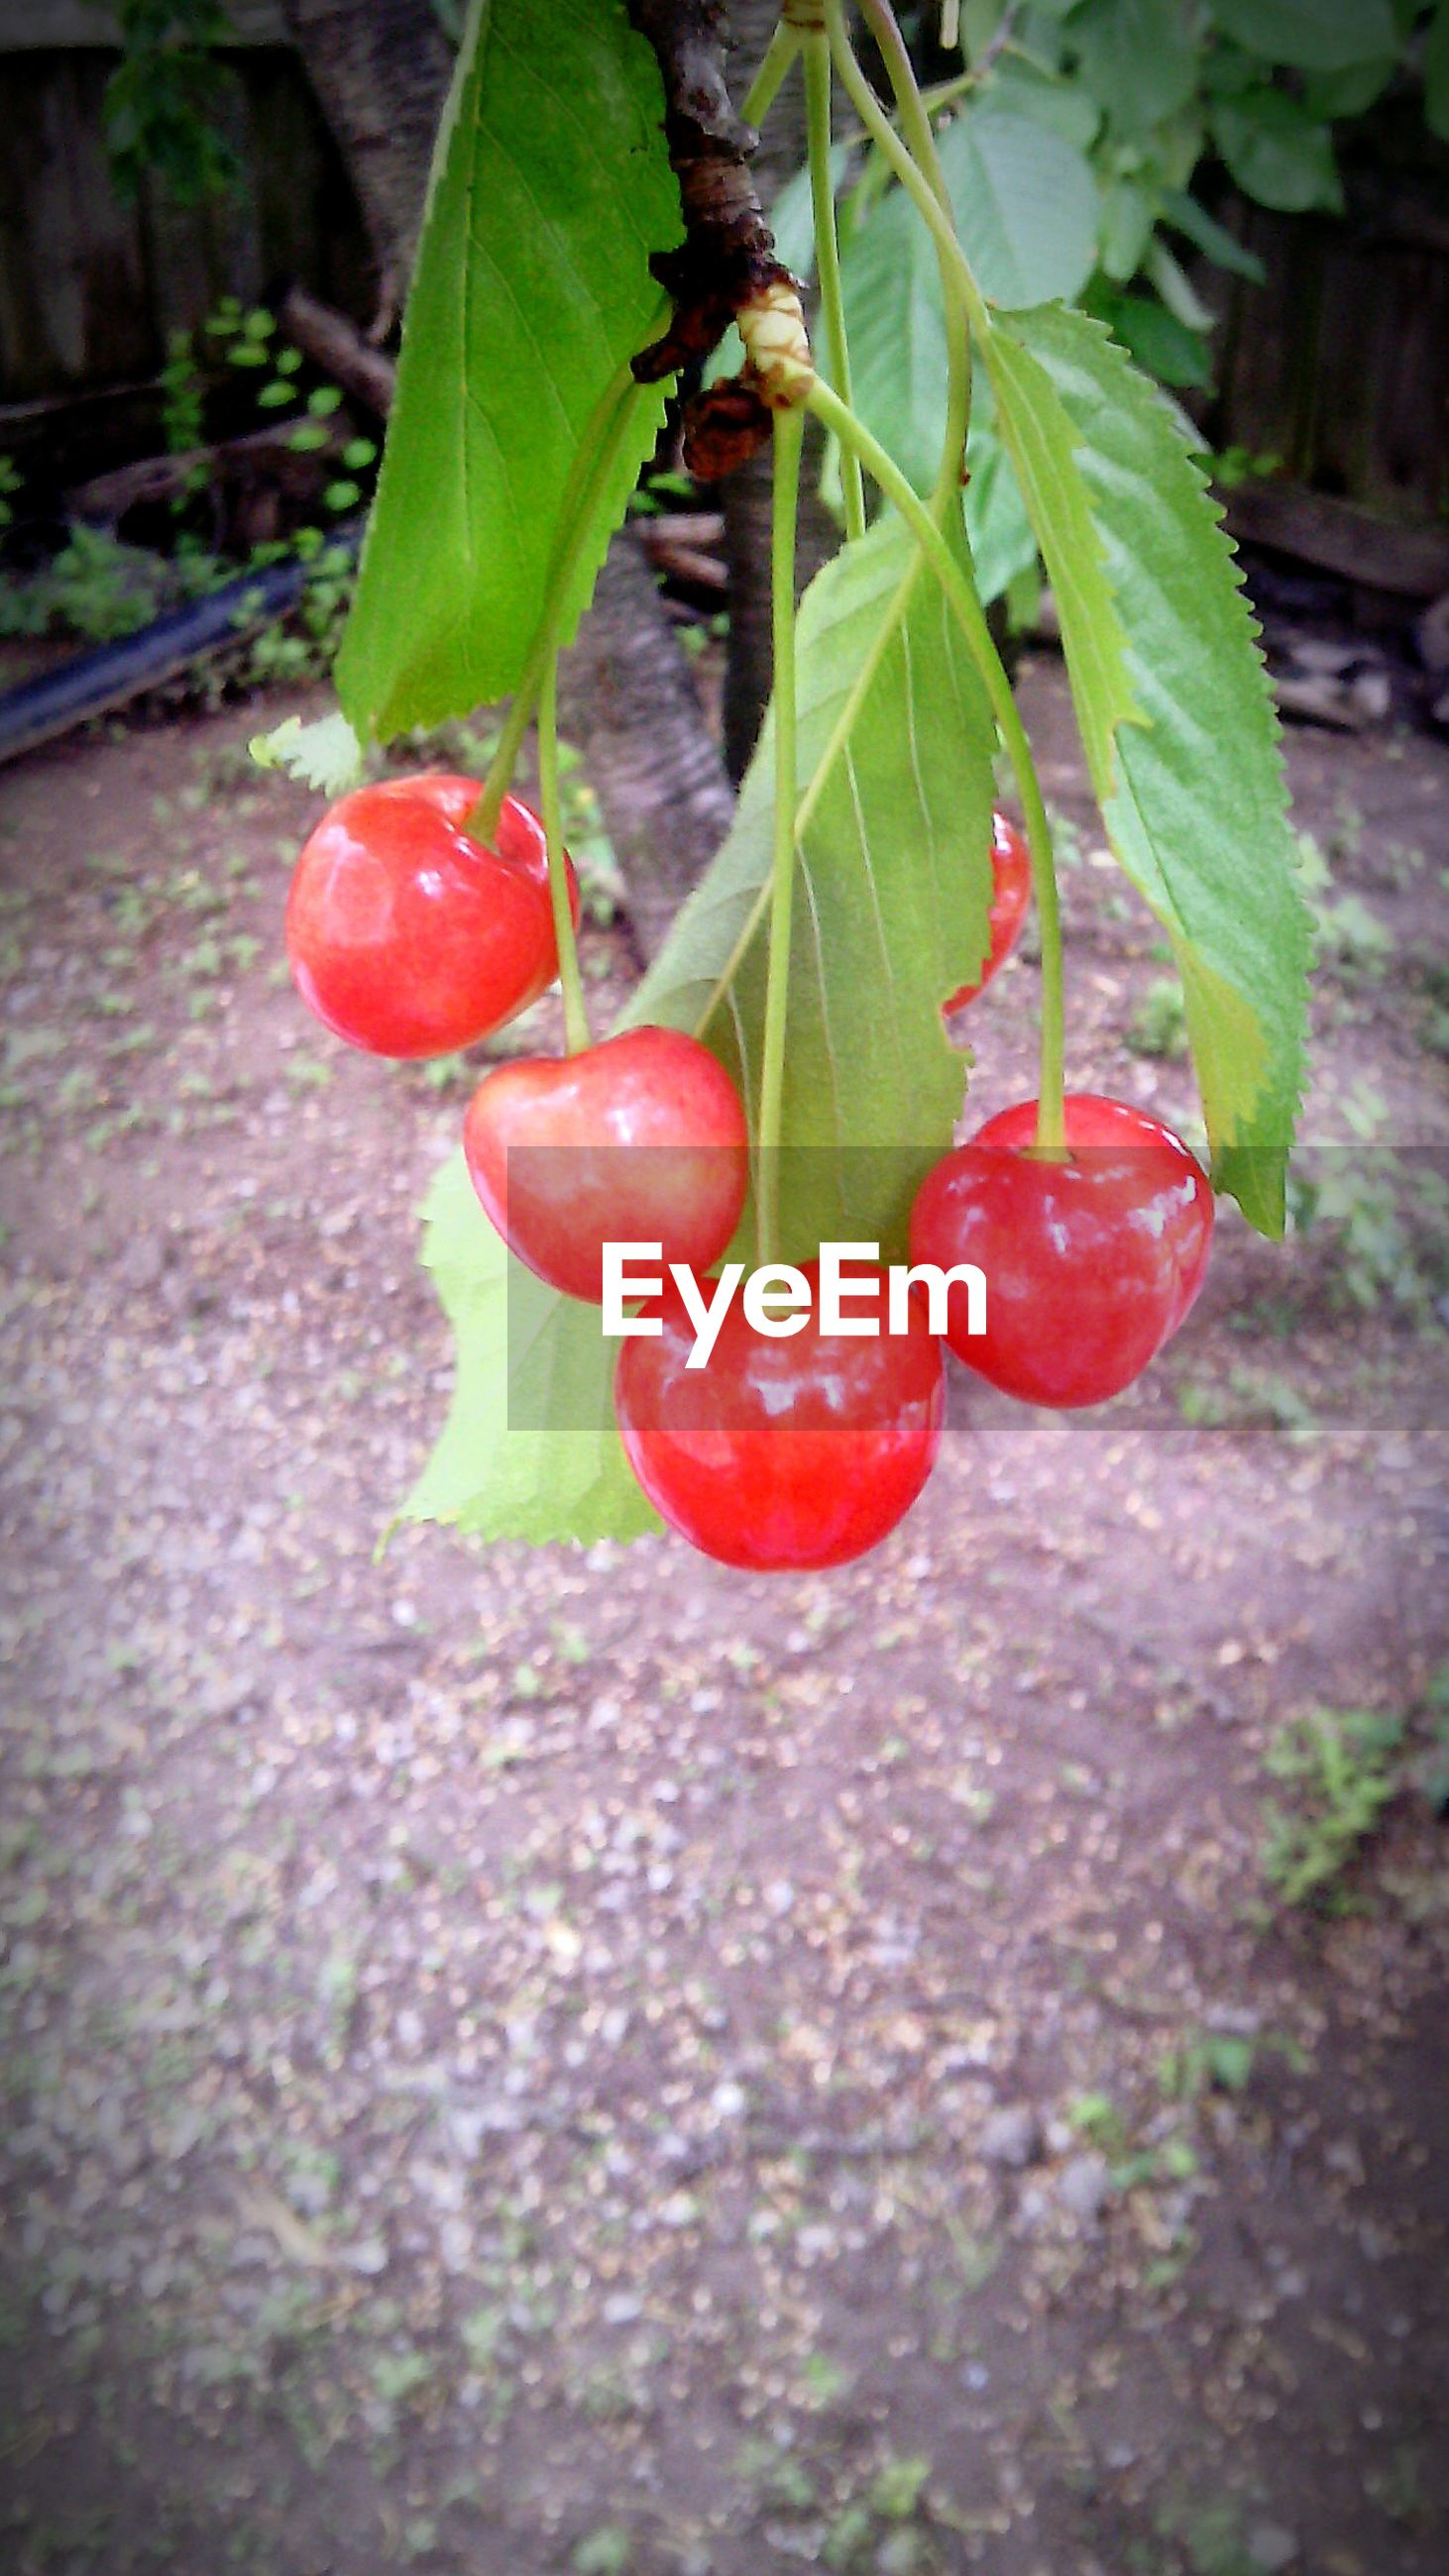 red, food and drink, freshness, fruit, healthy eating, food, leaf, growth, close-up, plant, green color, vegetable, growing, focus on foreground, tomato, ripe, no people, high angle view, day, nature